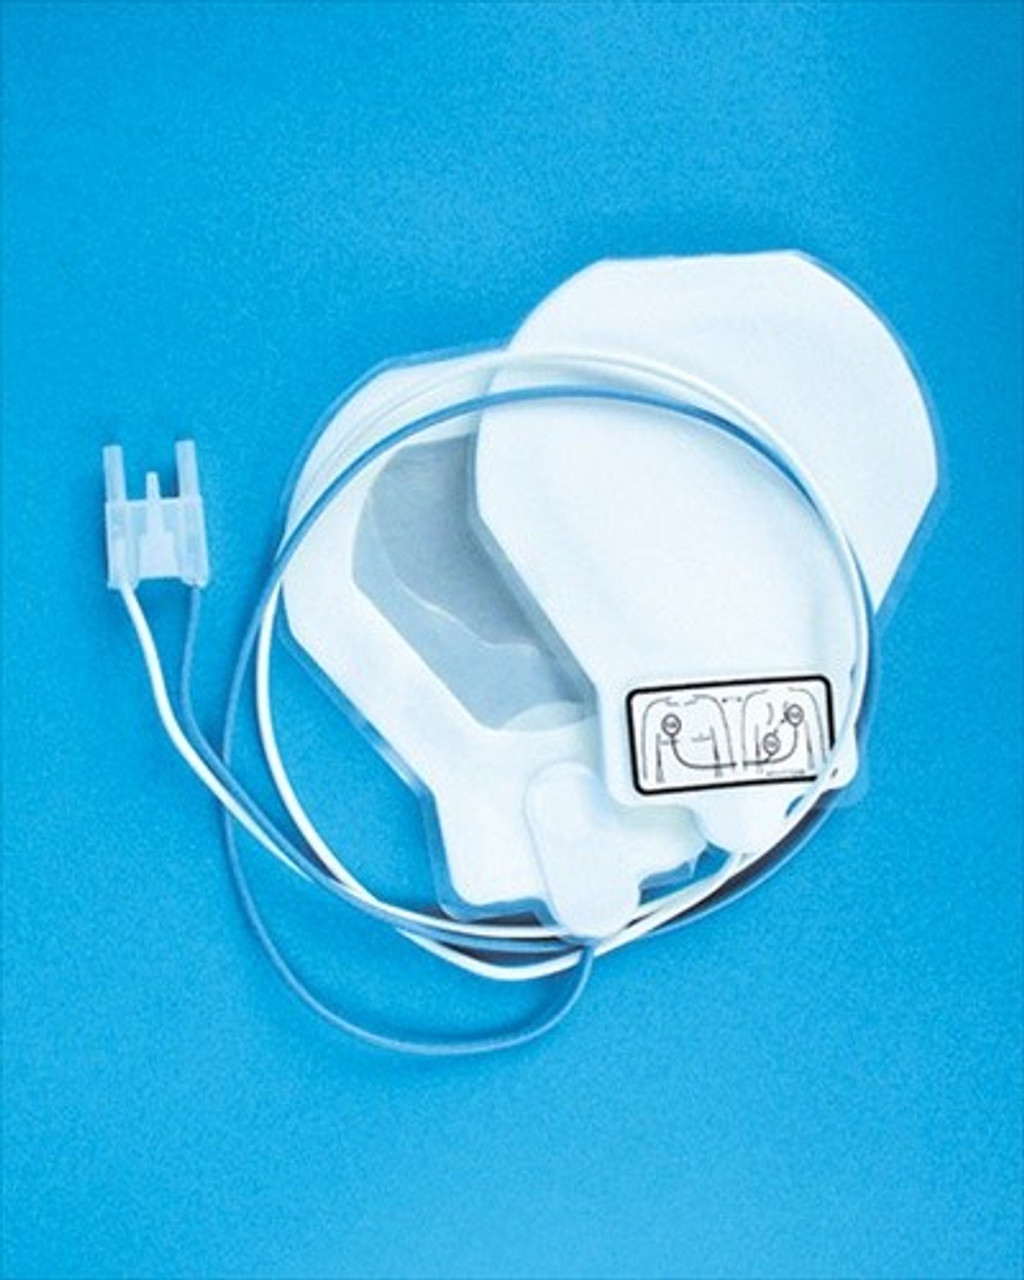 Pediatric Zoll Defibrillation Pads by Conmed